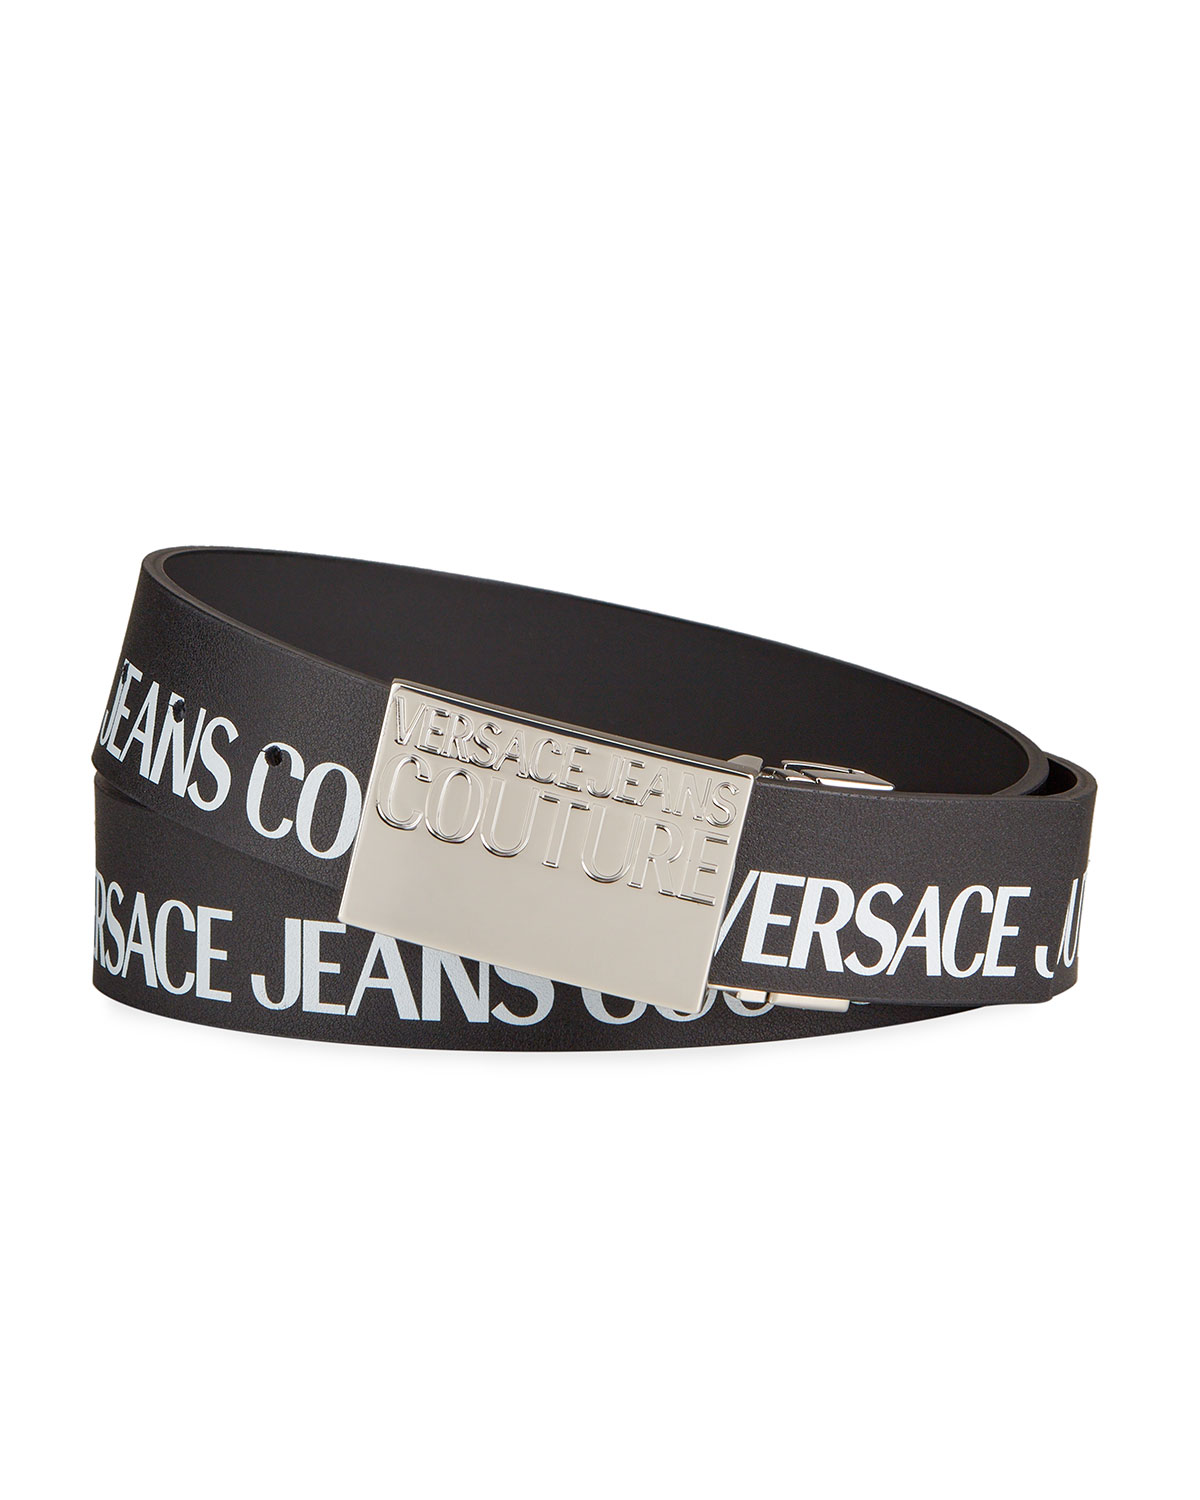 Versace Jeans Couture MEN'S LOGO TAPE REVERSIBLE LEATHER BELT